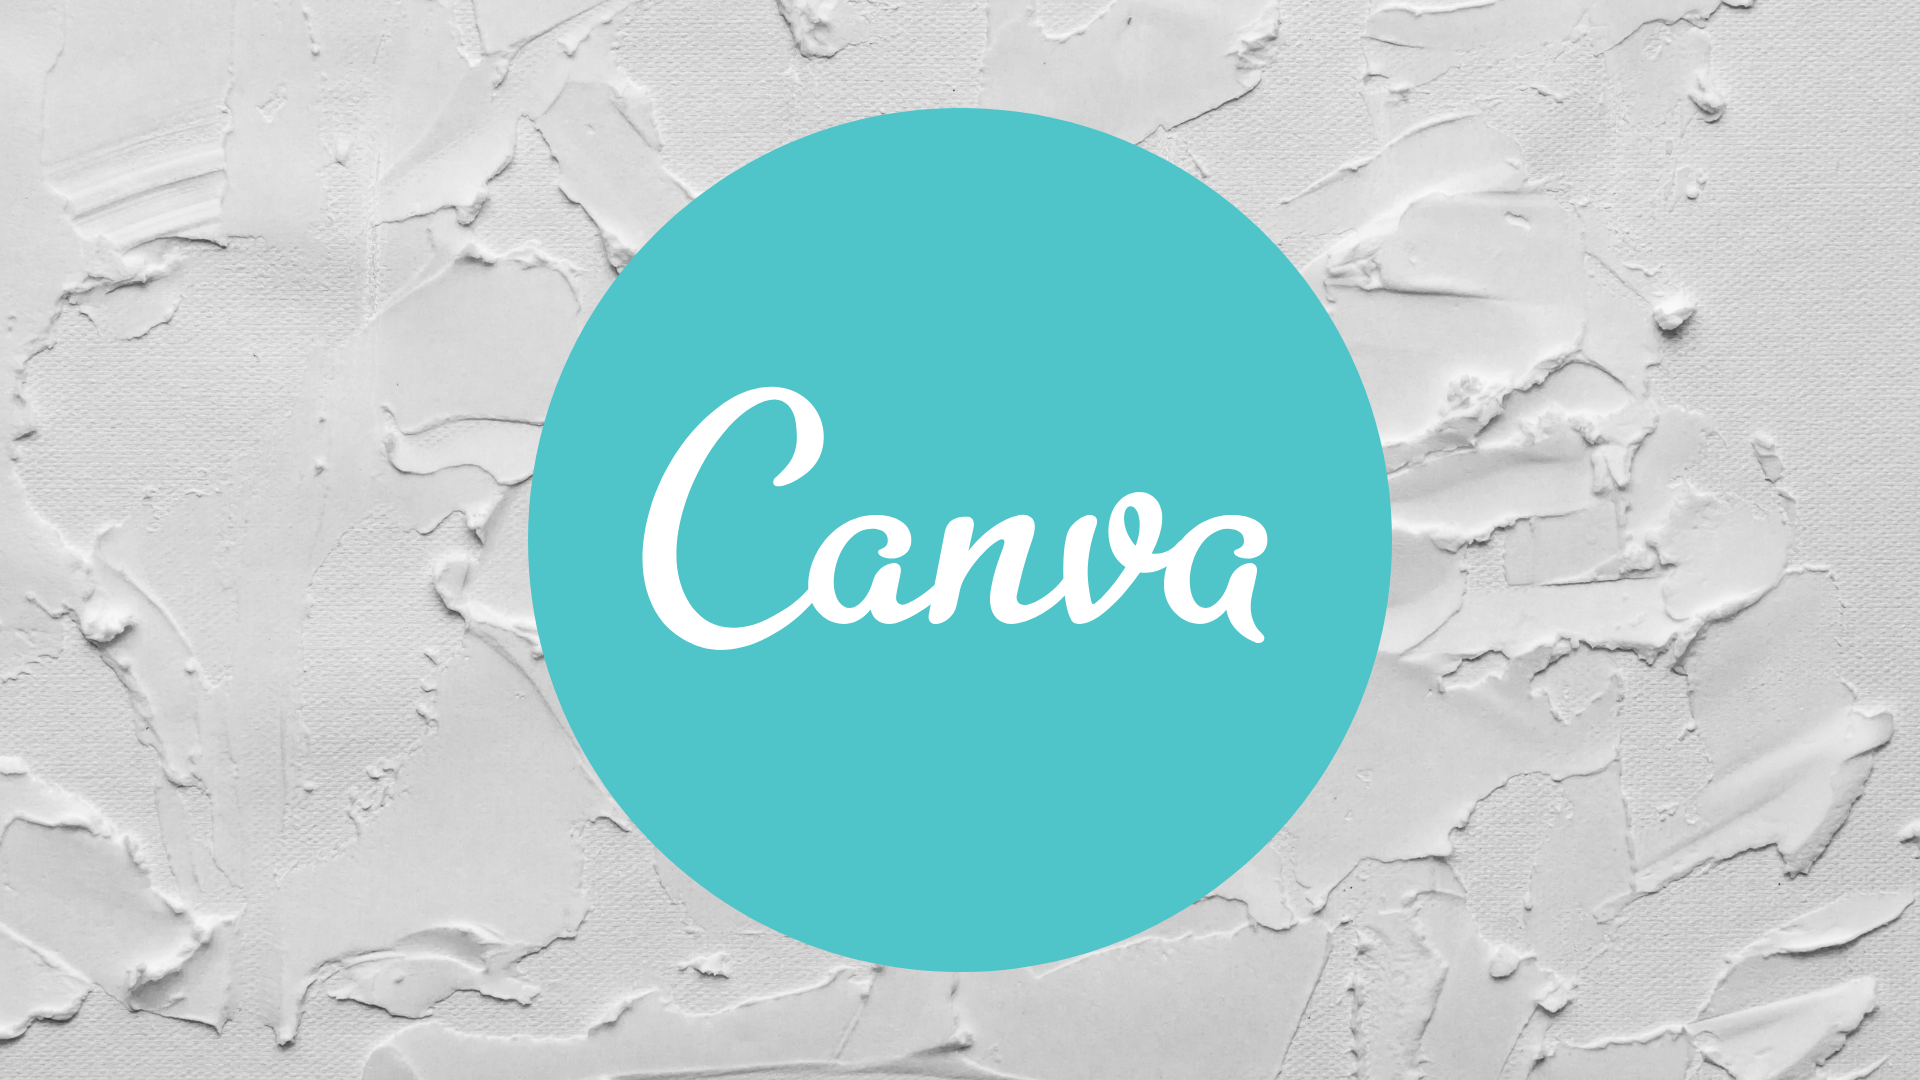 10 Best Canva Courses & Tutorials - Learn Canva Online